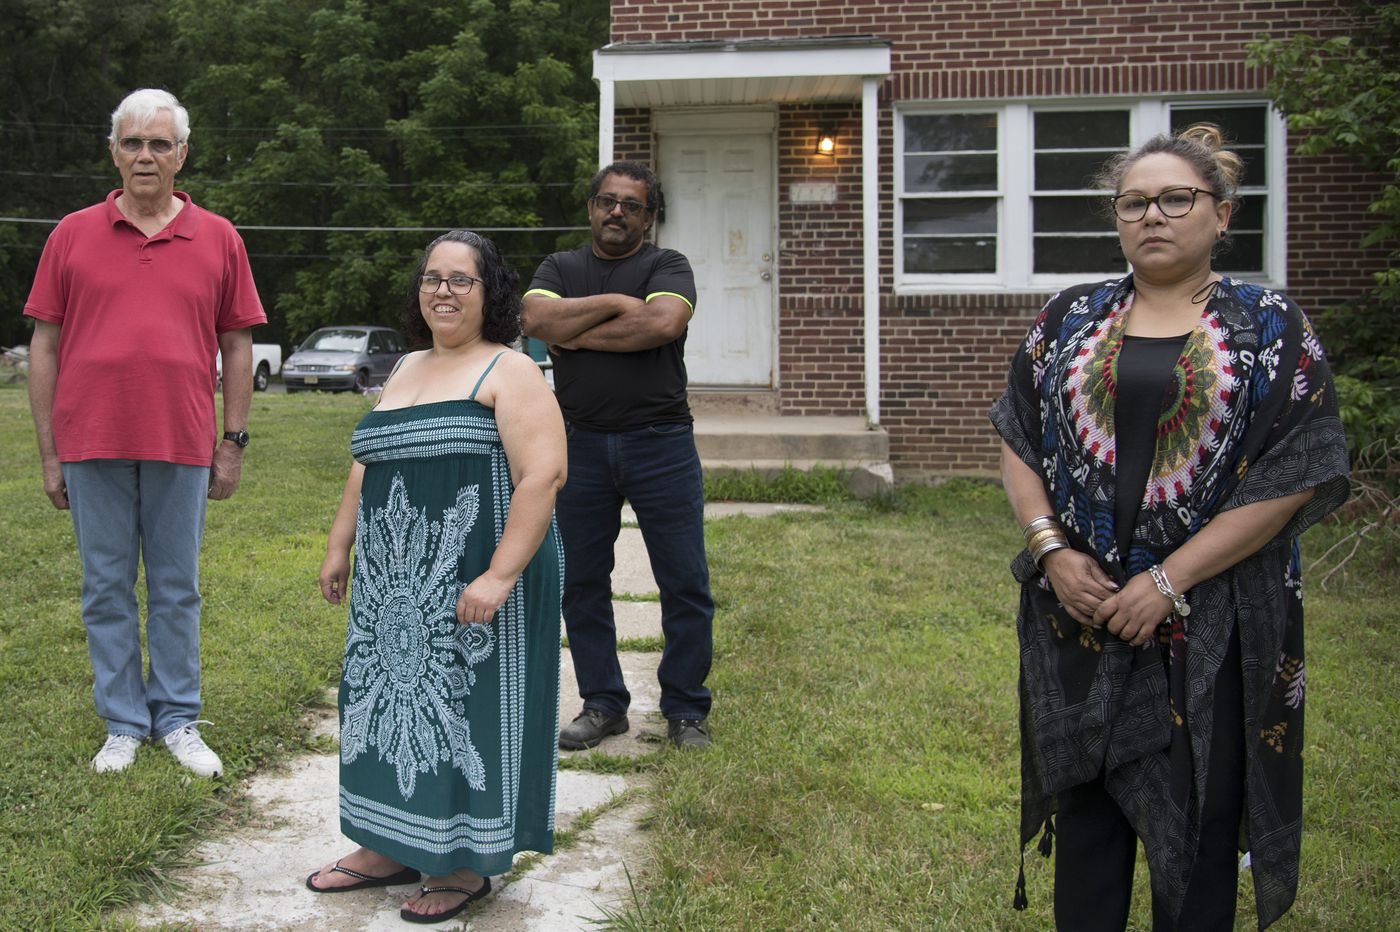 Nine new houses sit empty in Mount Holly. Here's why